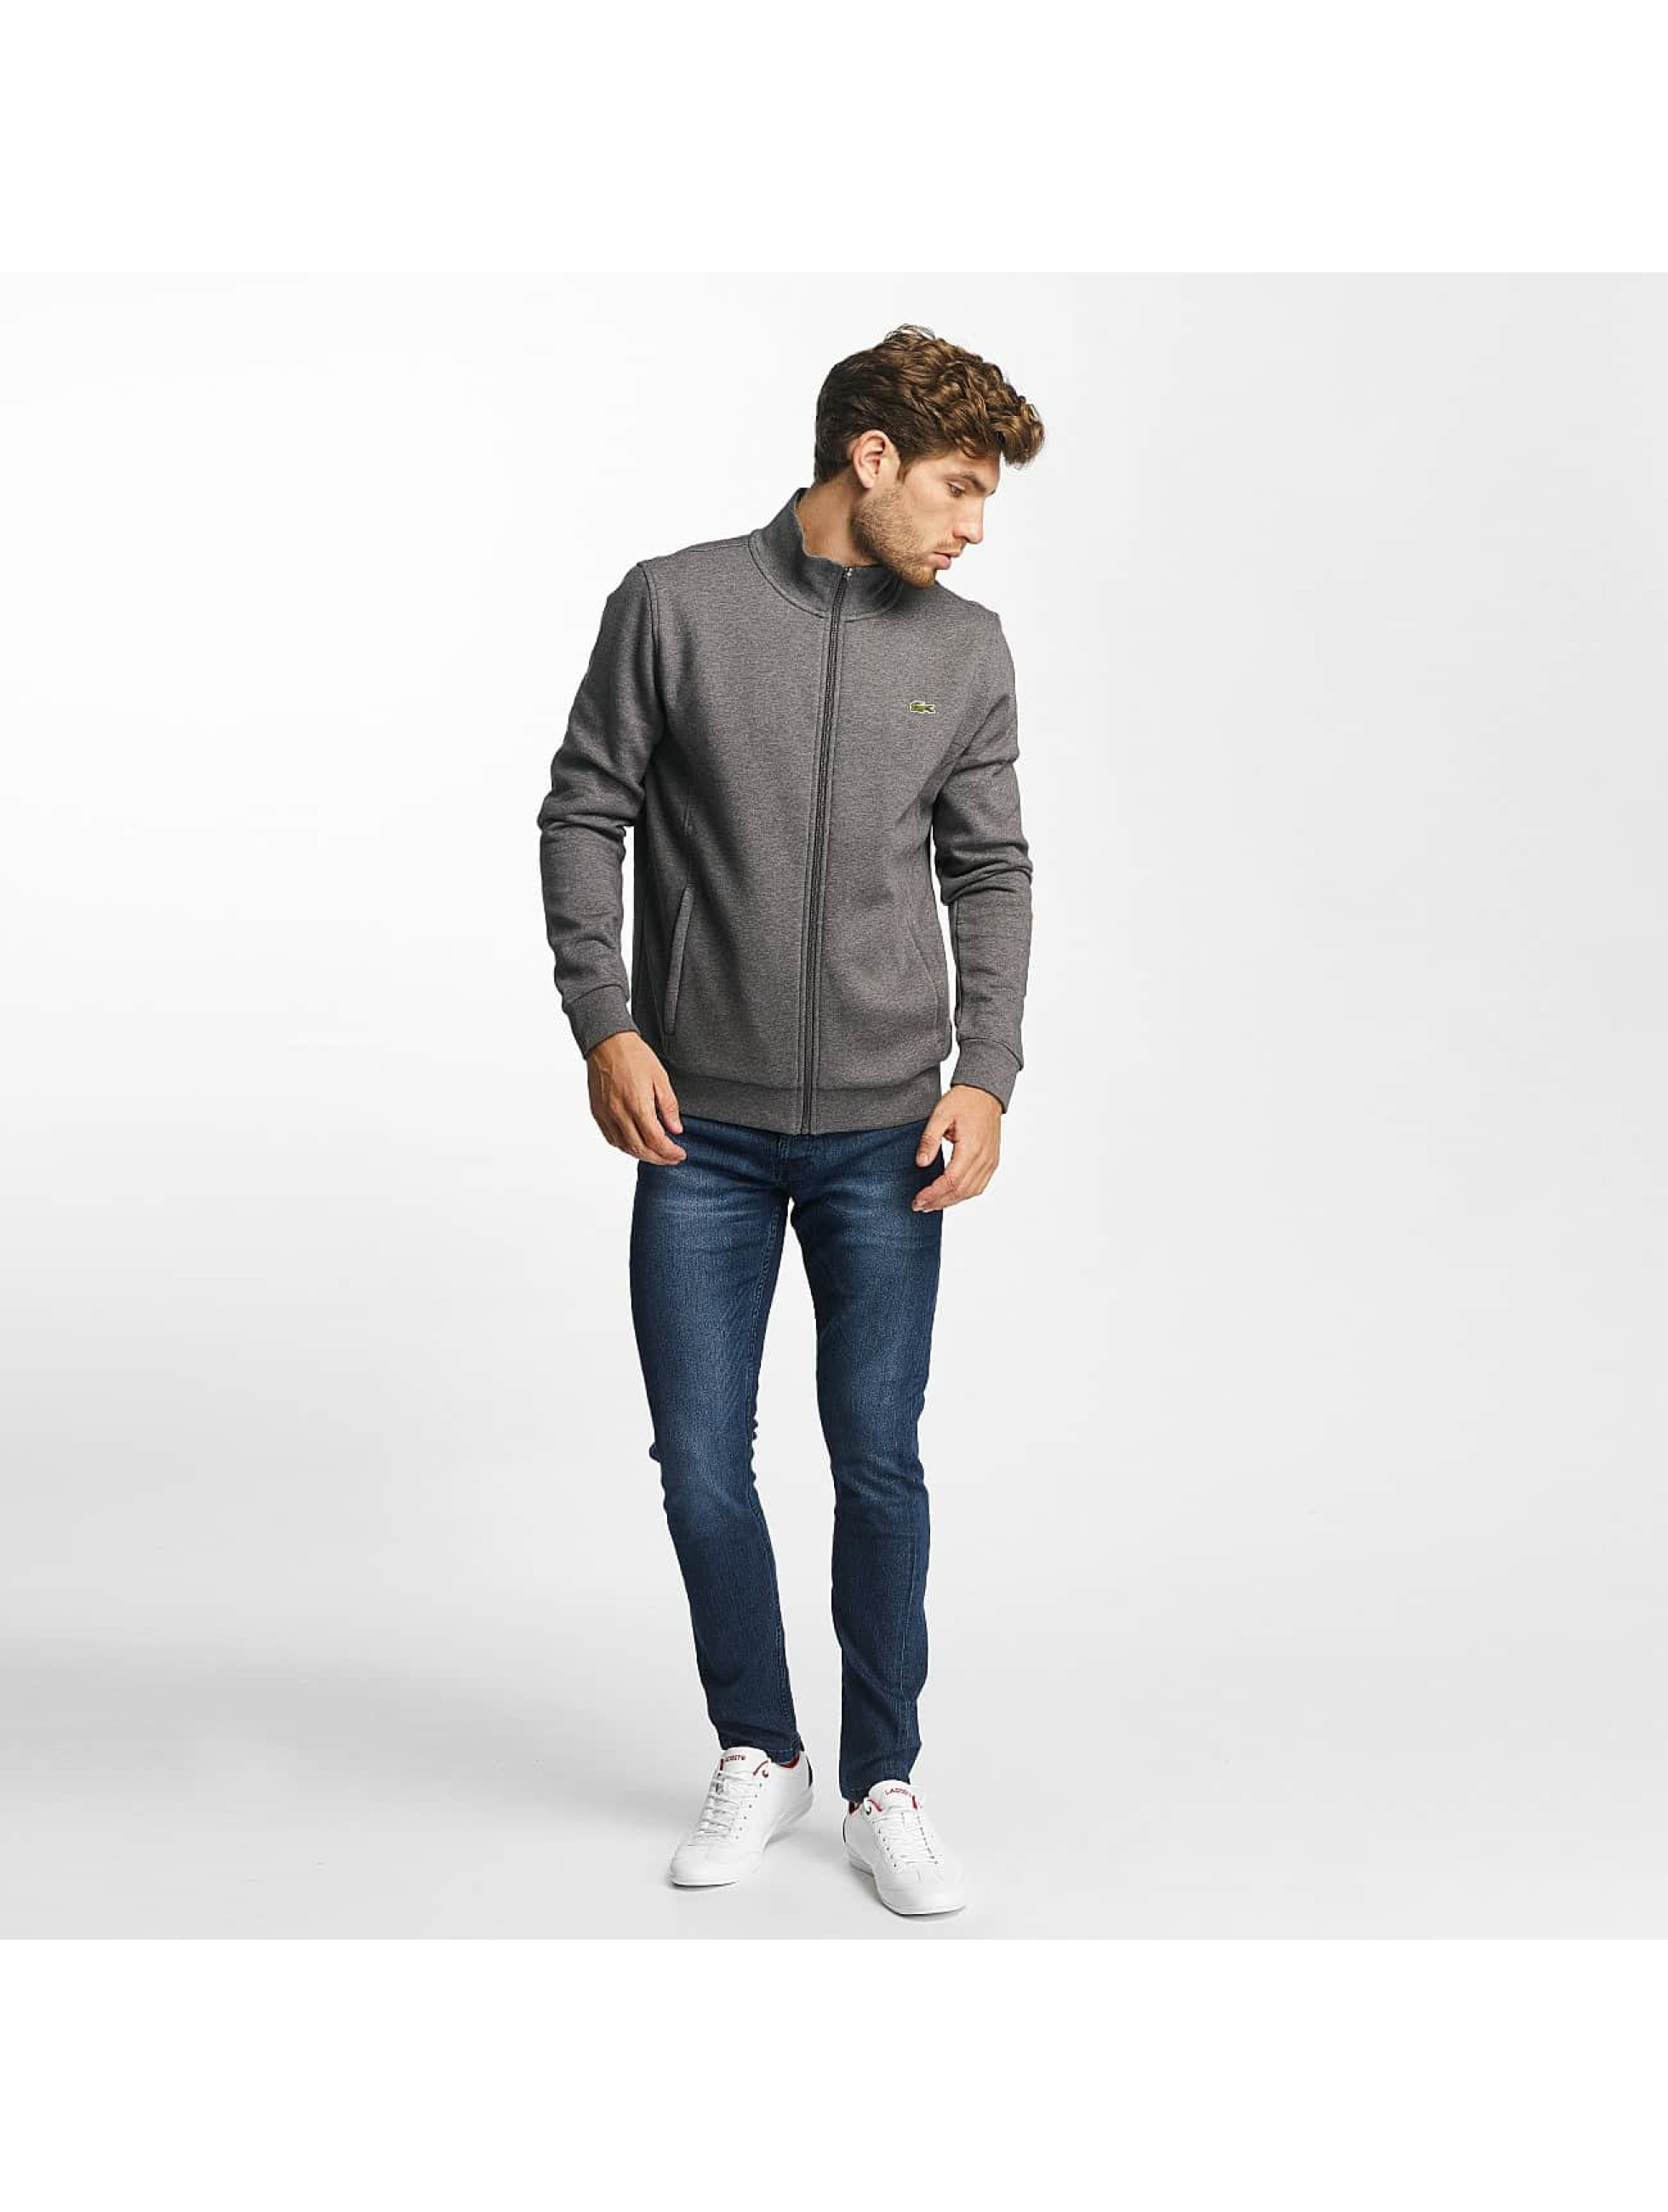 Lacoste Classic Lightweight Jacket Pitch grey